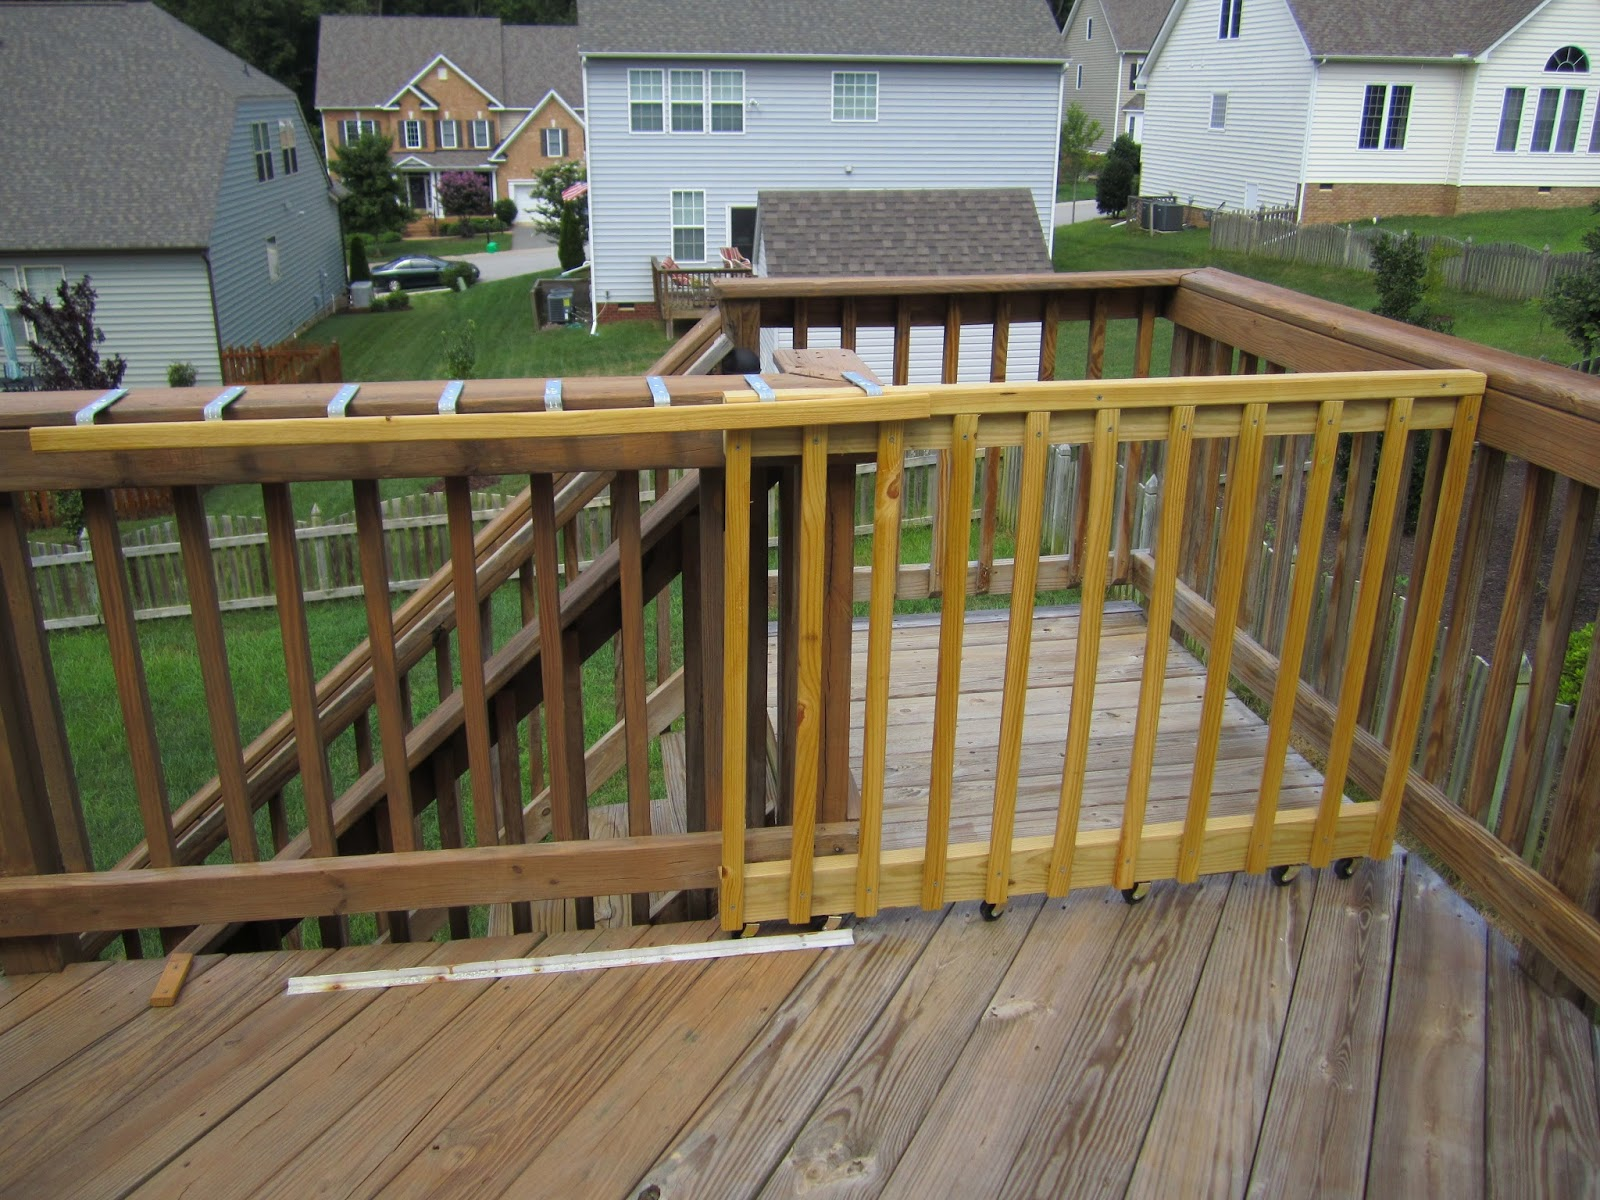 Pool Deck Gate Ideas above ground pool deck fencing aboveground pool deck connected to house using removable fencing Sliding Deck Gate Outdoors Pinterest Deck Gate And Decking